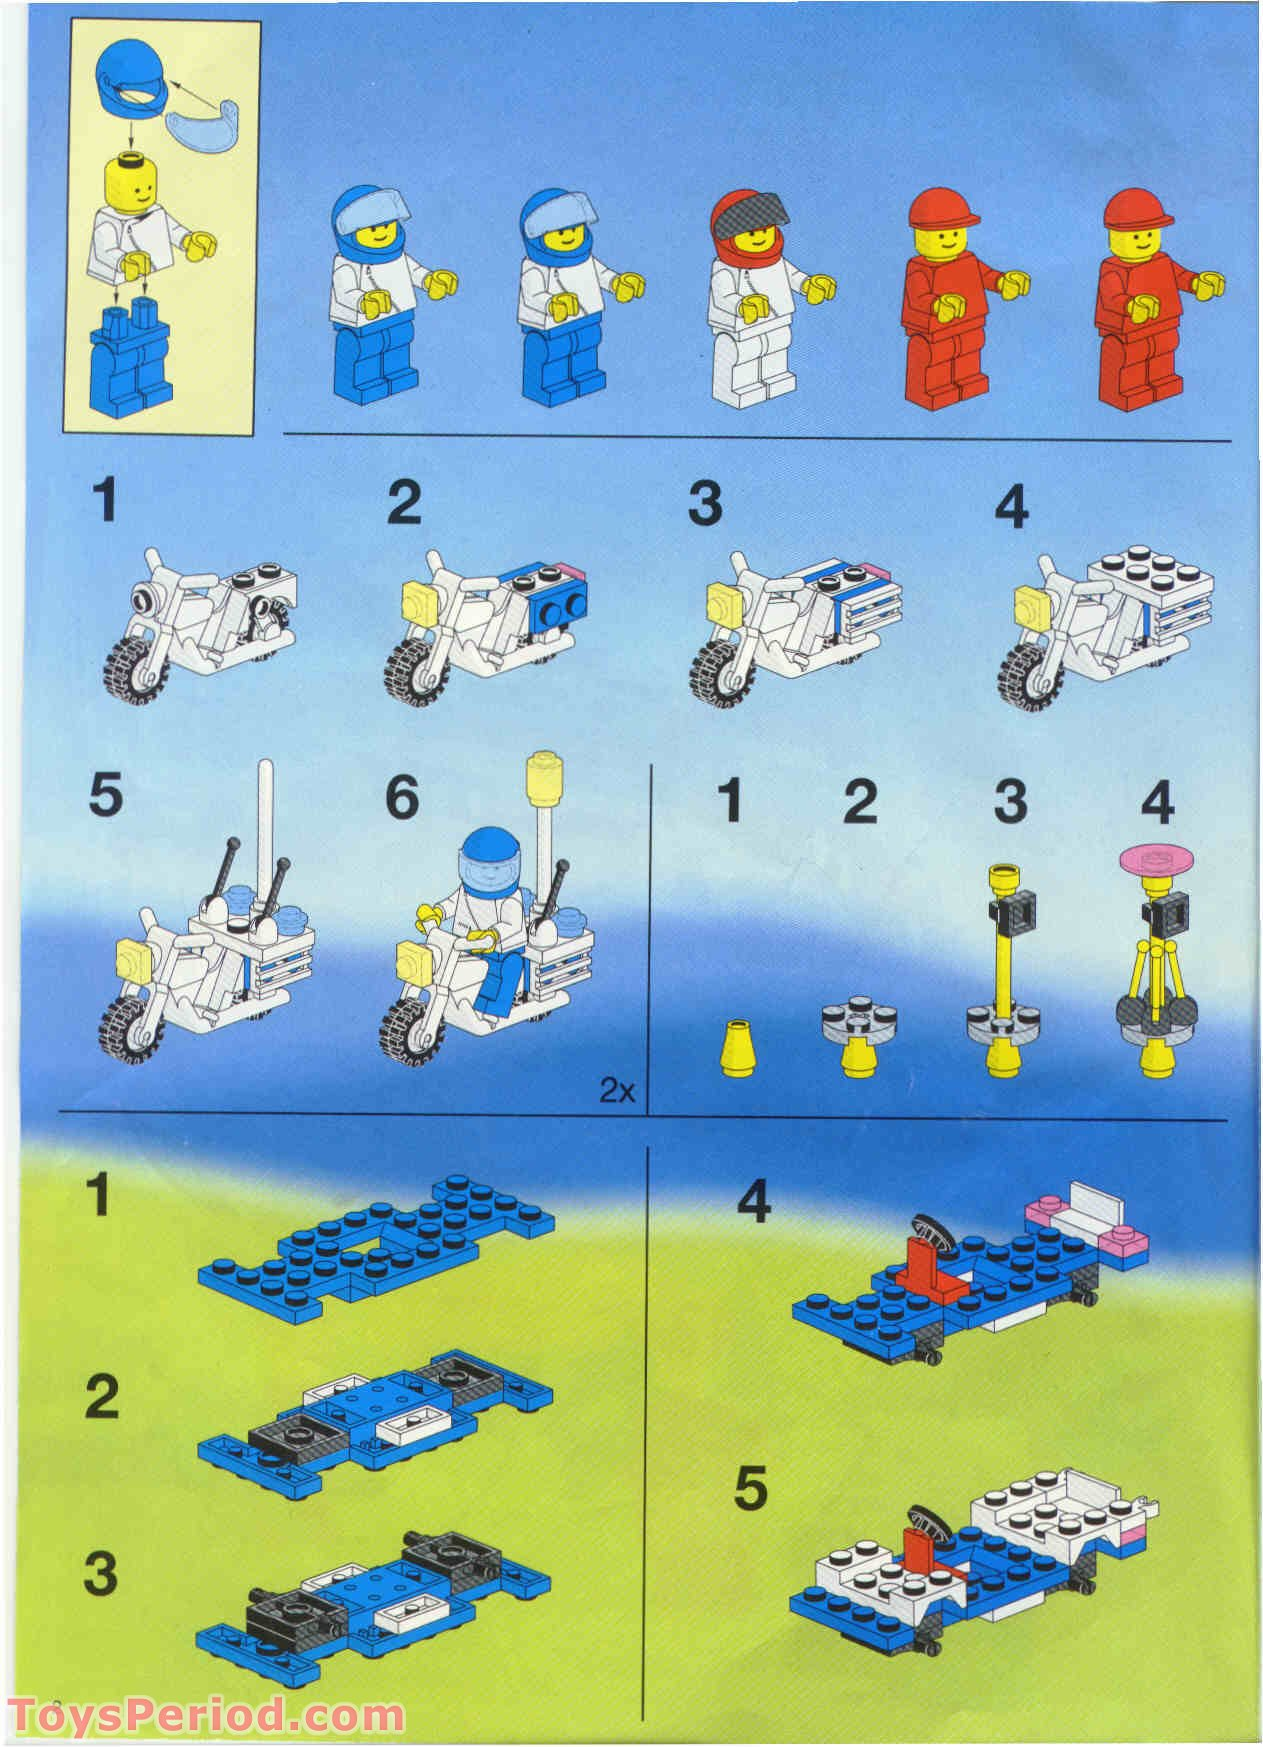 Lego 6346 Shuttle Launching Crew Set Parts Inventory And